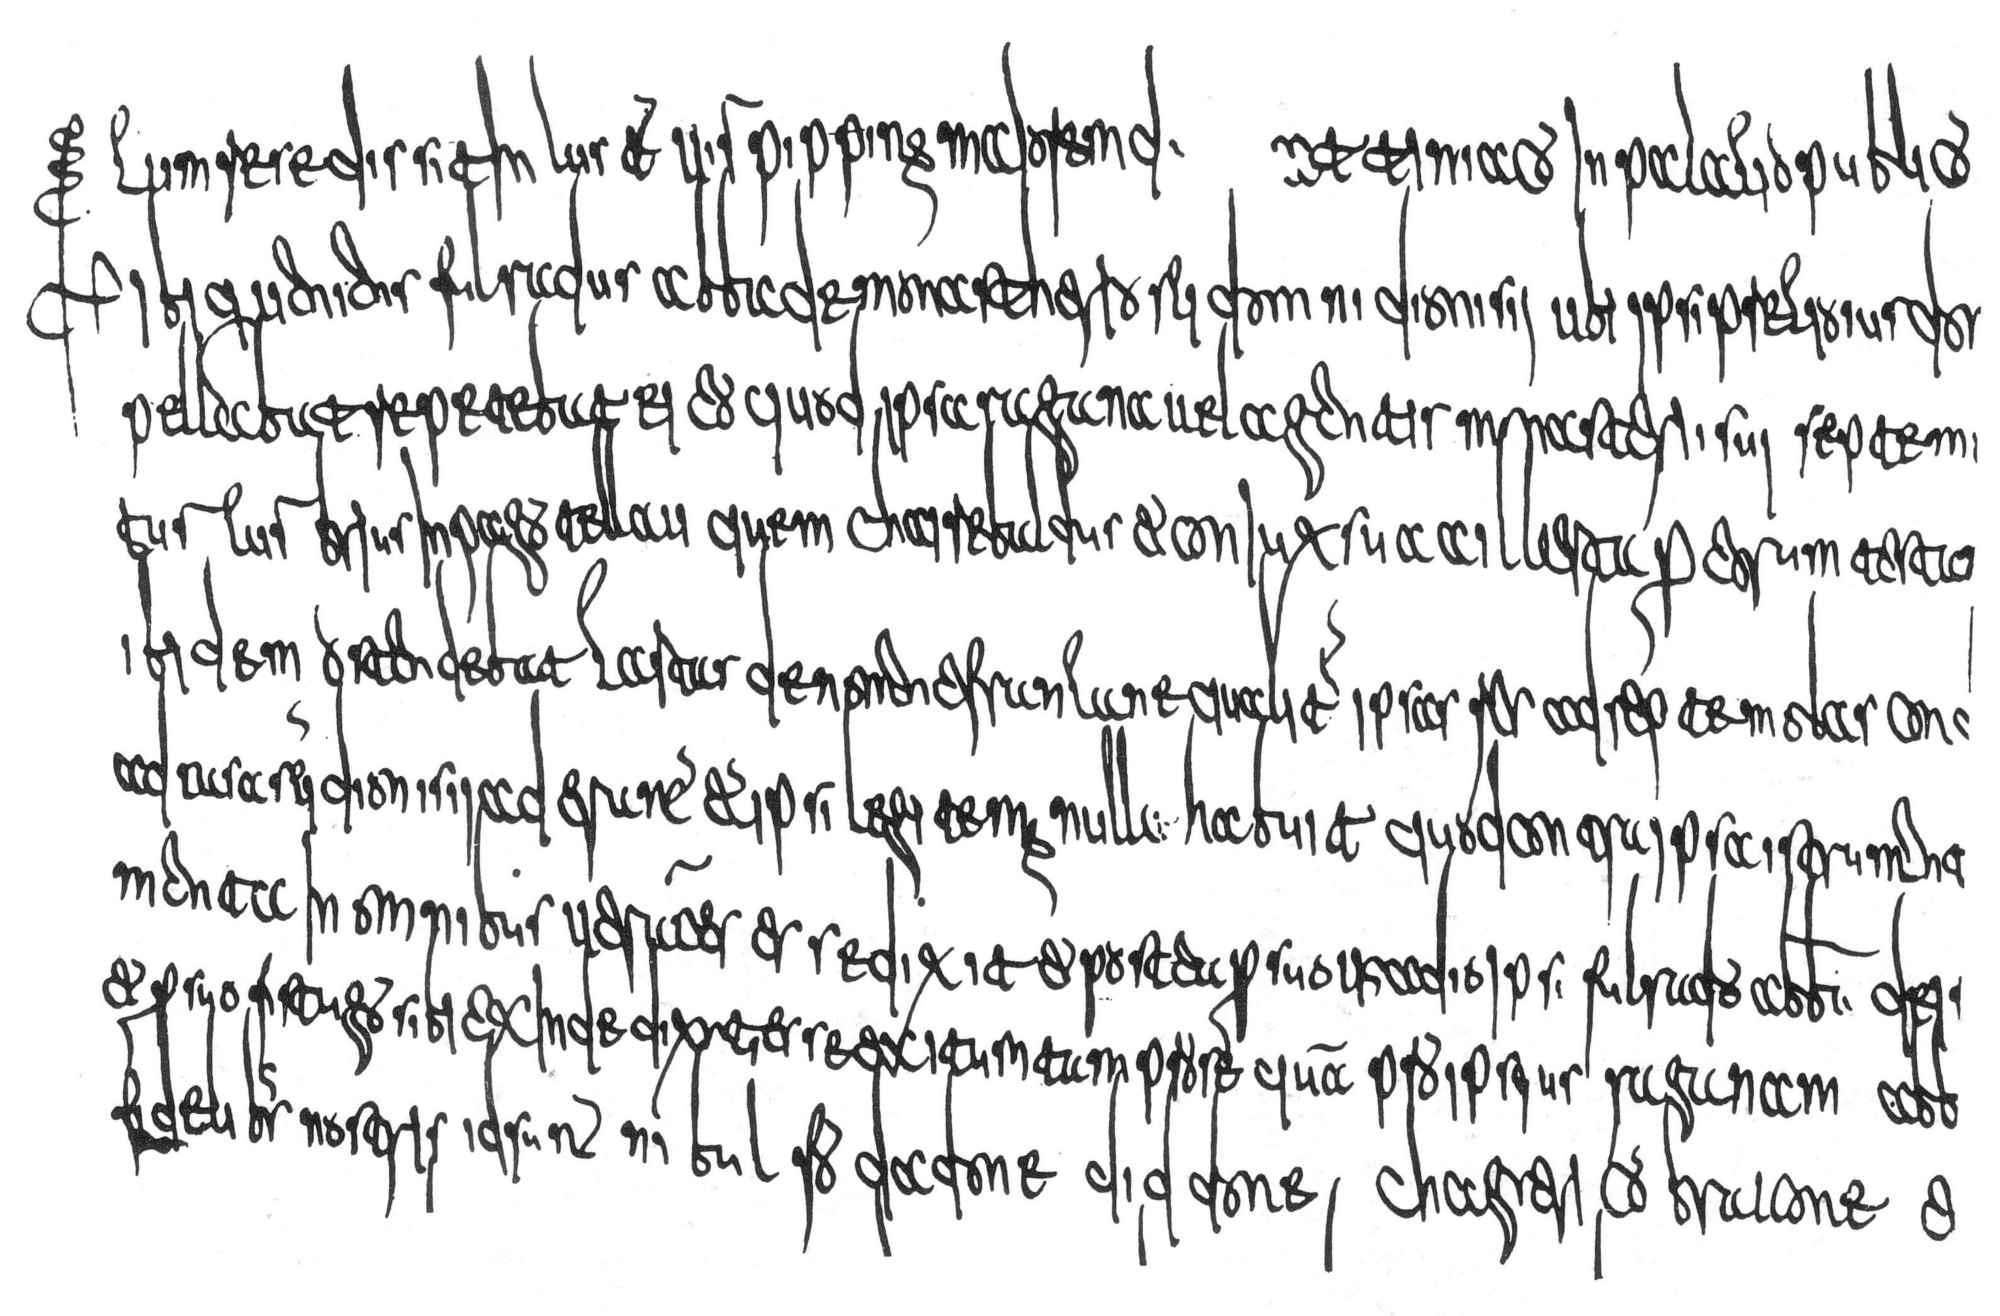 Merovingian writing